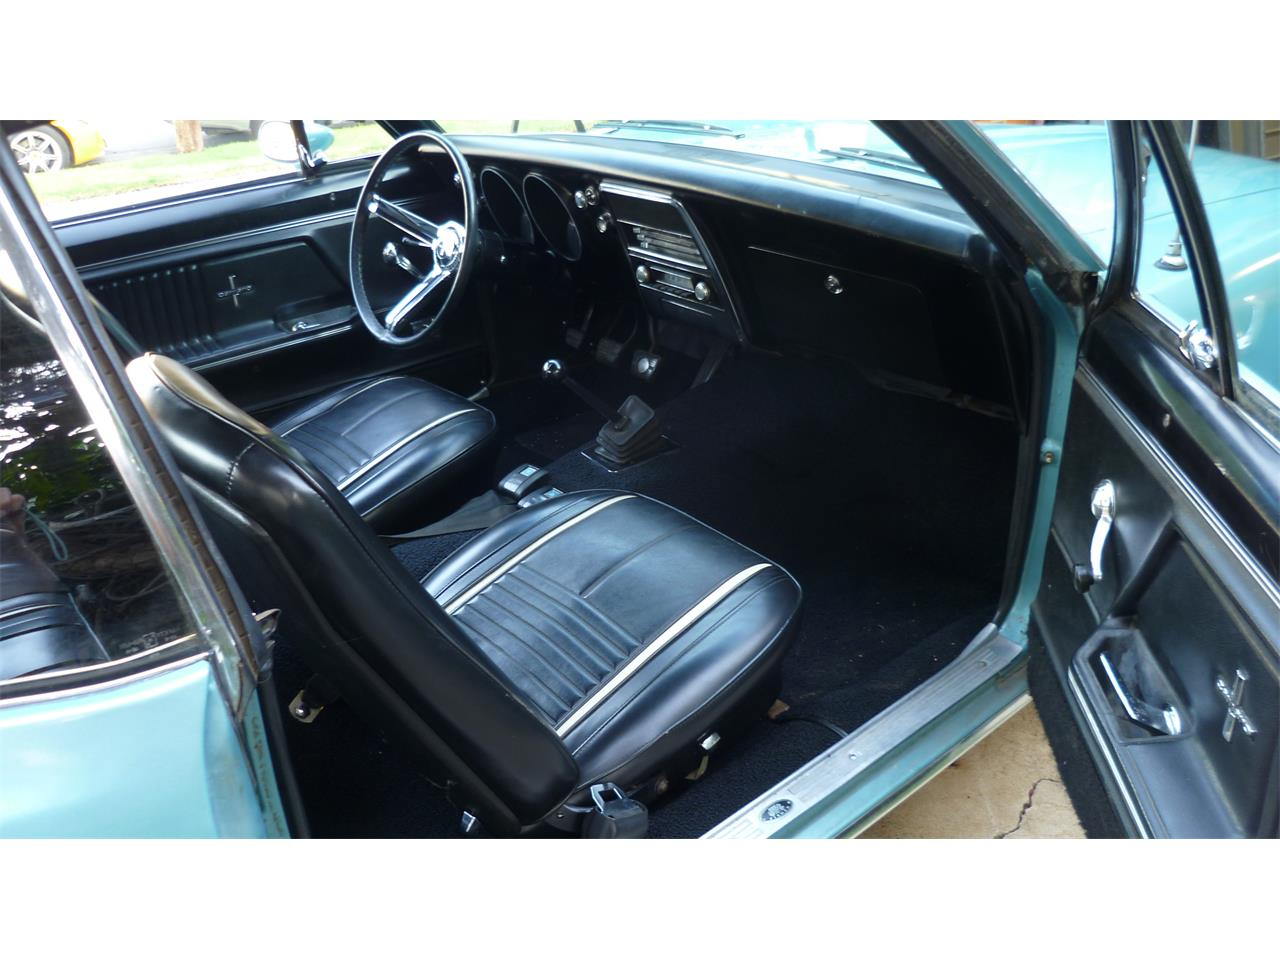 Large Picture of Classic '67 Chevrolet Camaro located in San Diego California - $34,875.00 Offered by a Private Seller - MAKO